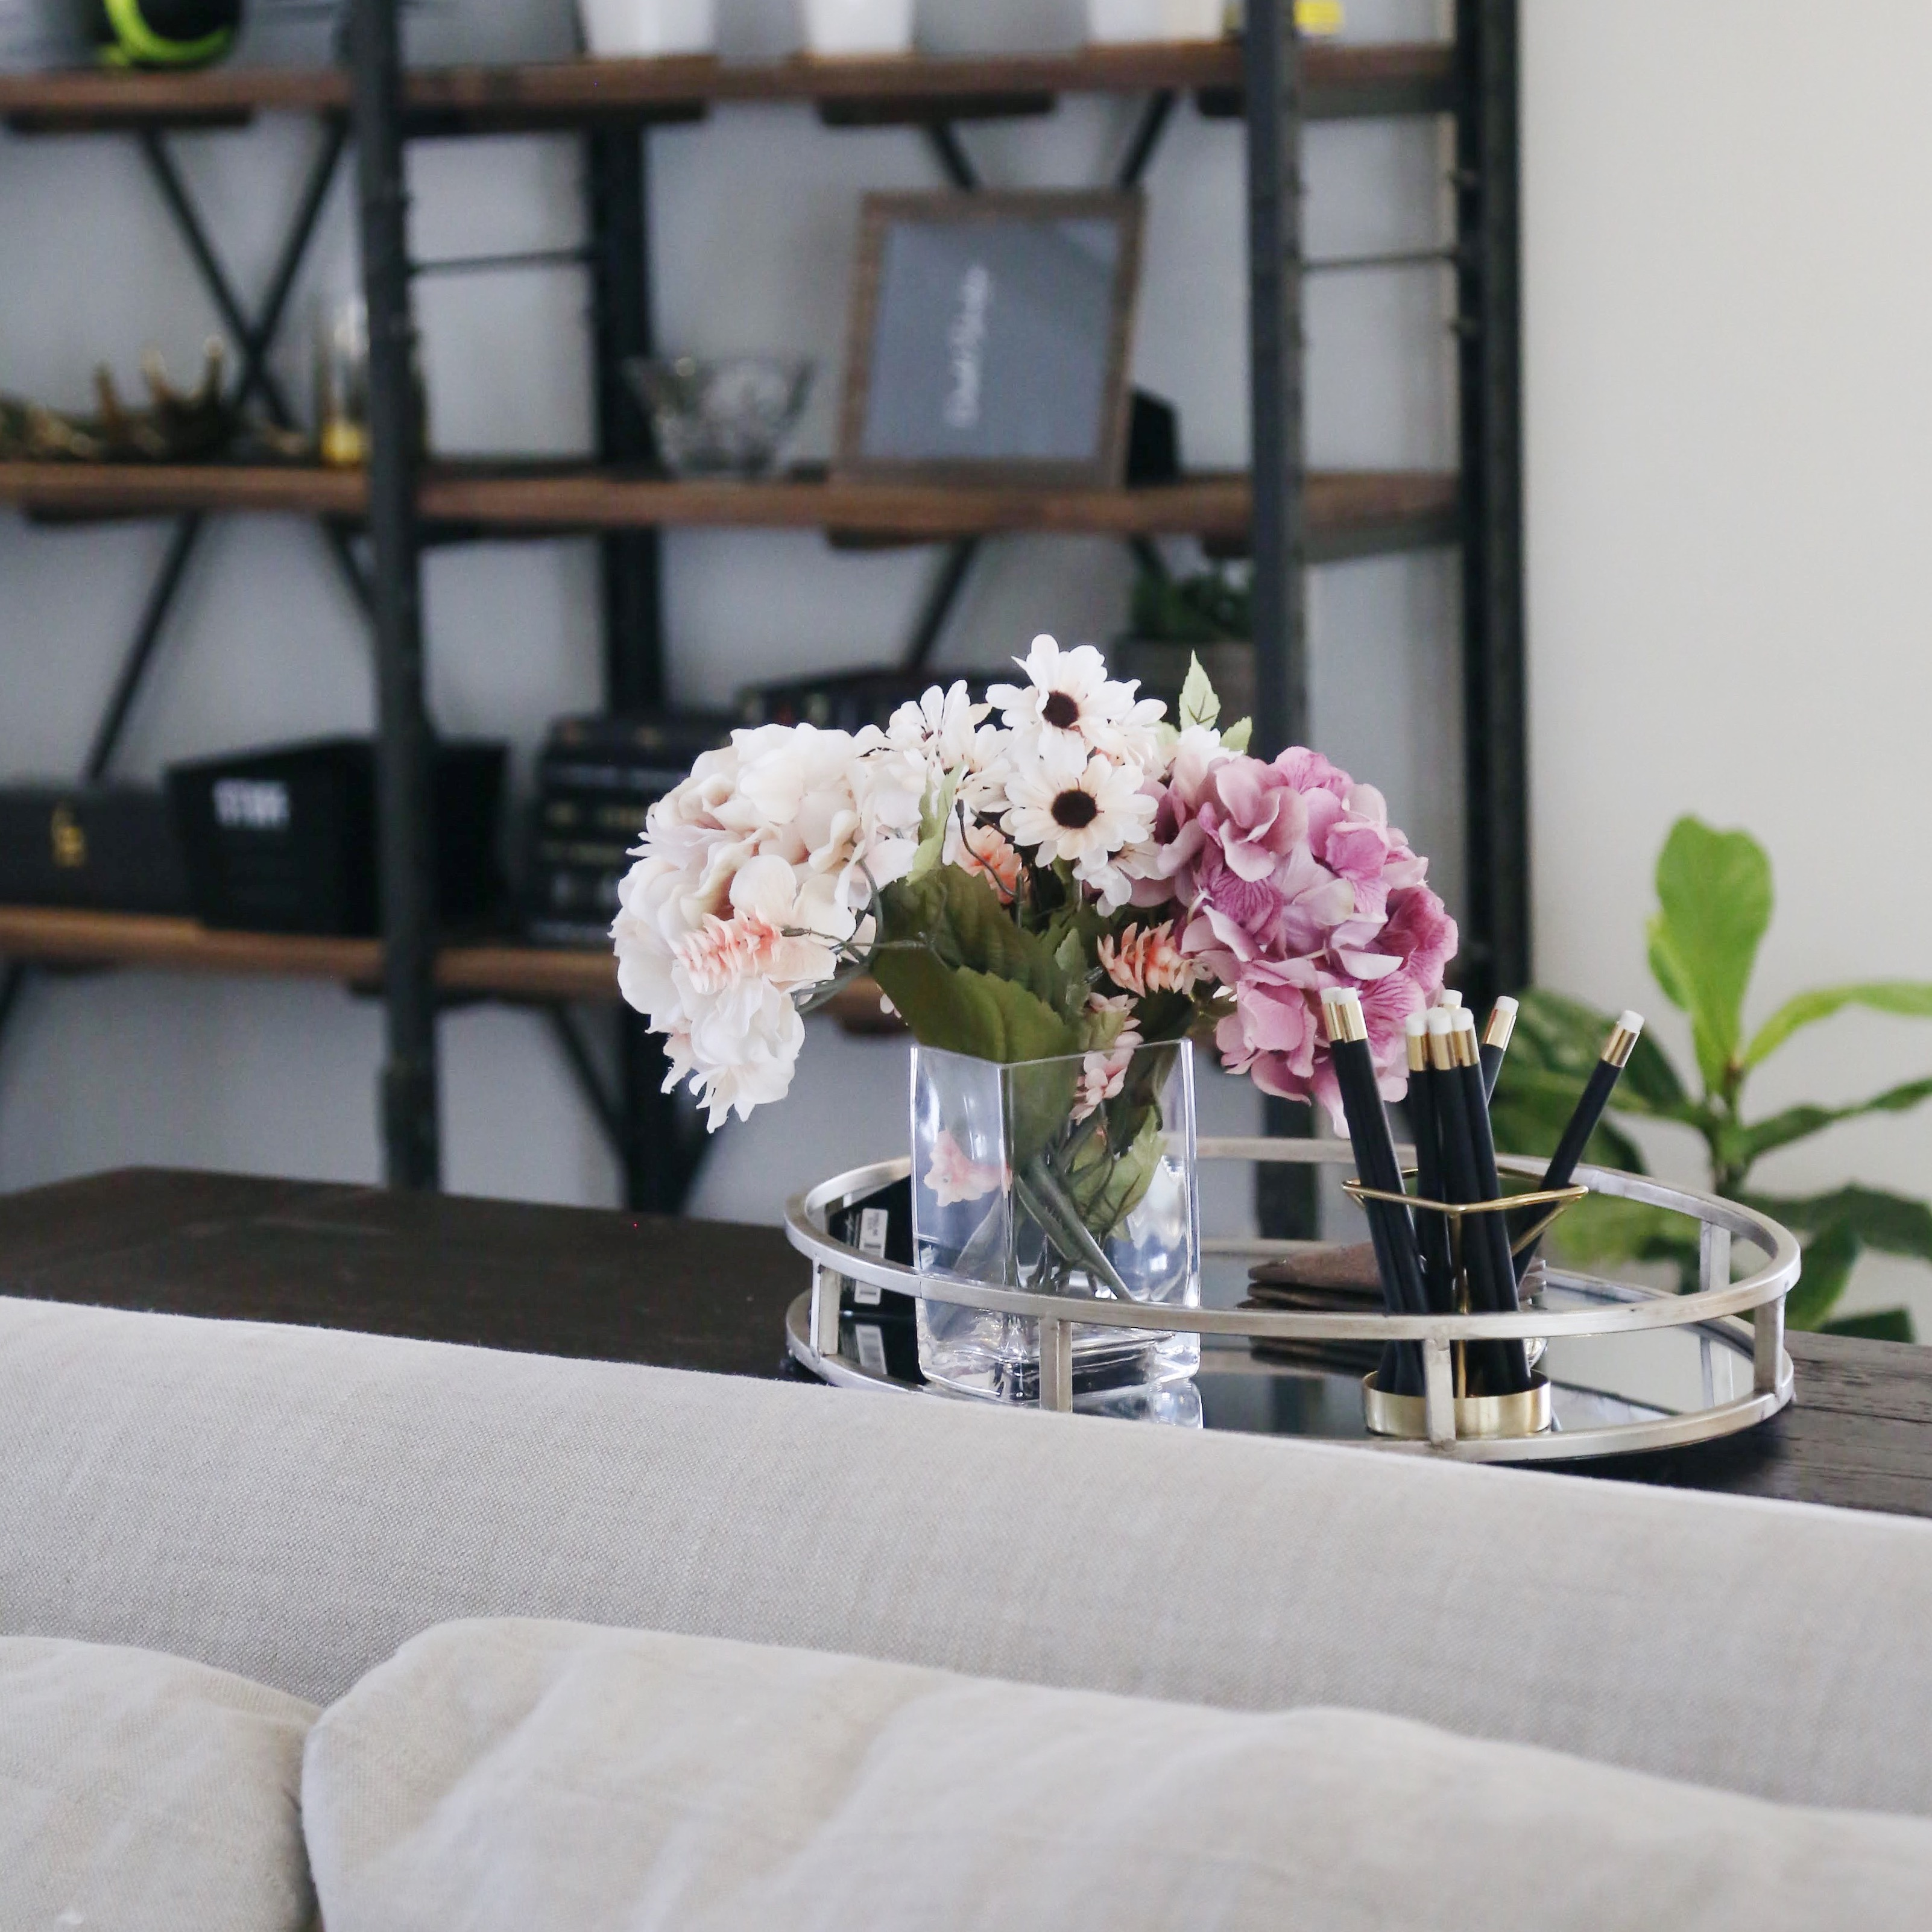 Faux flowers for the home